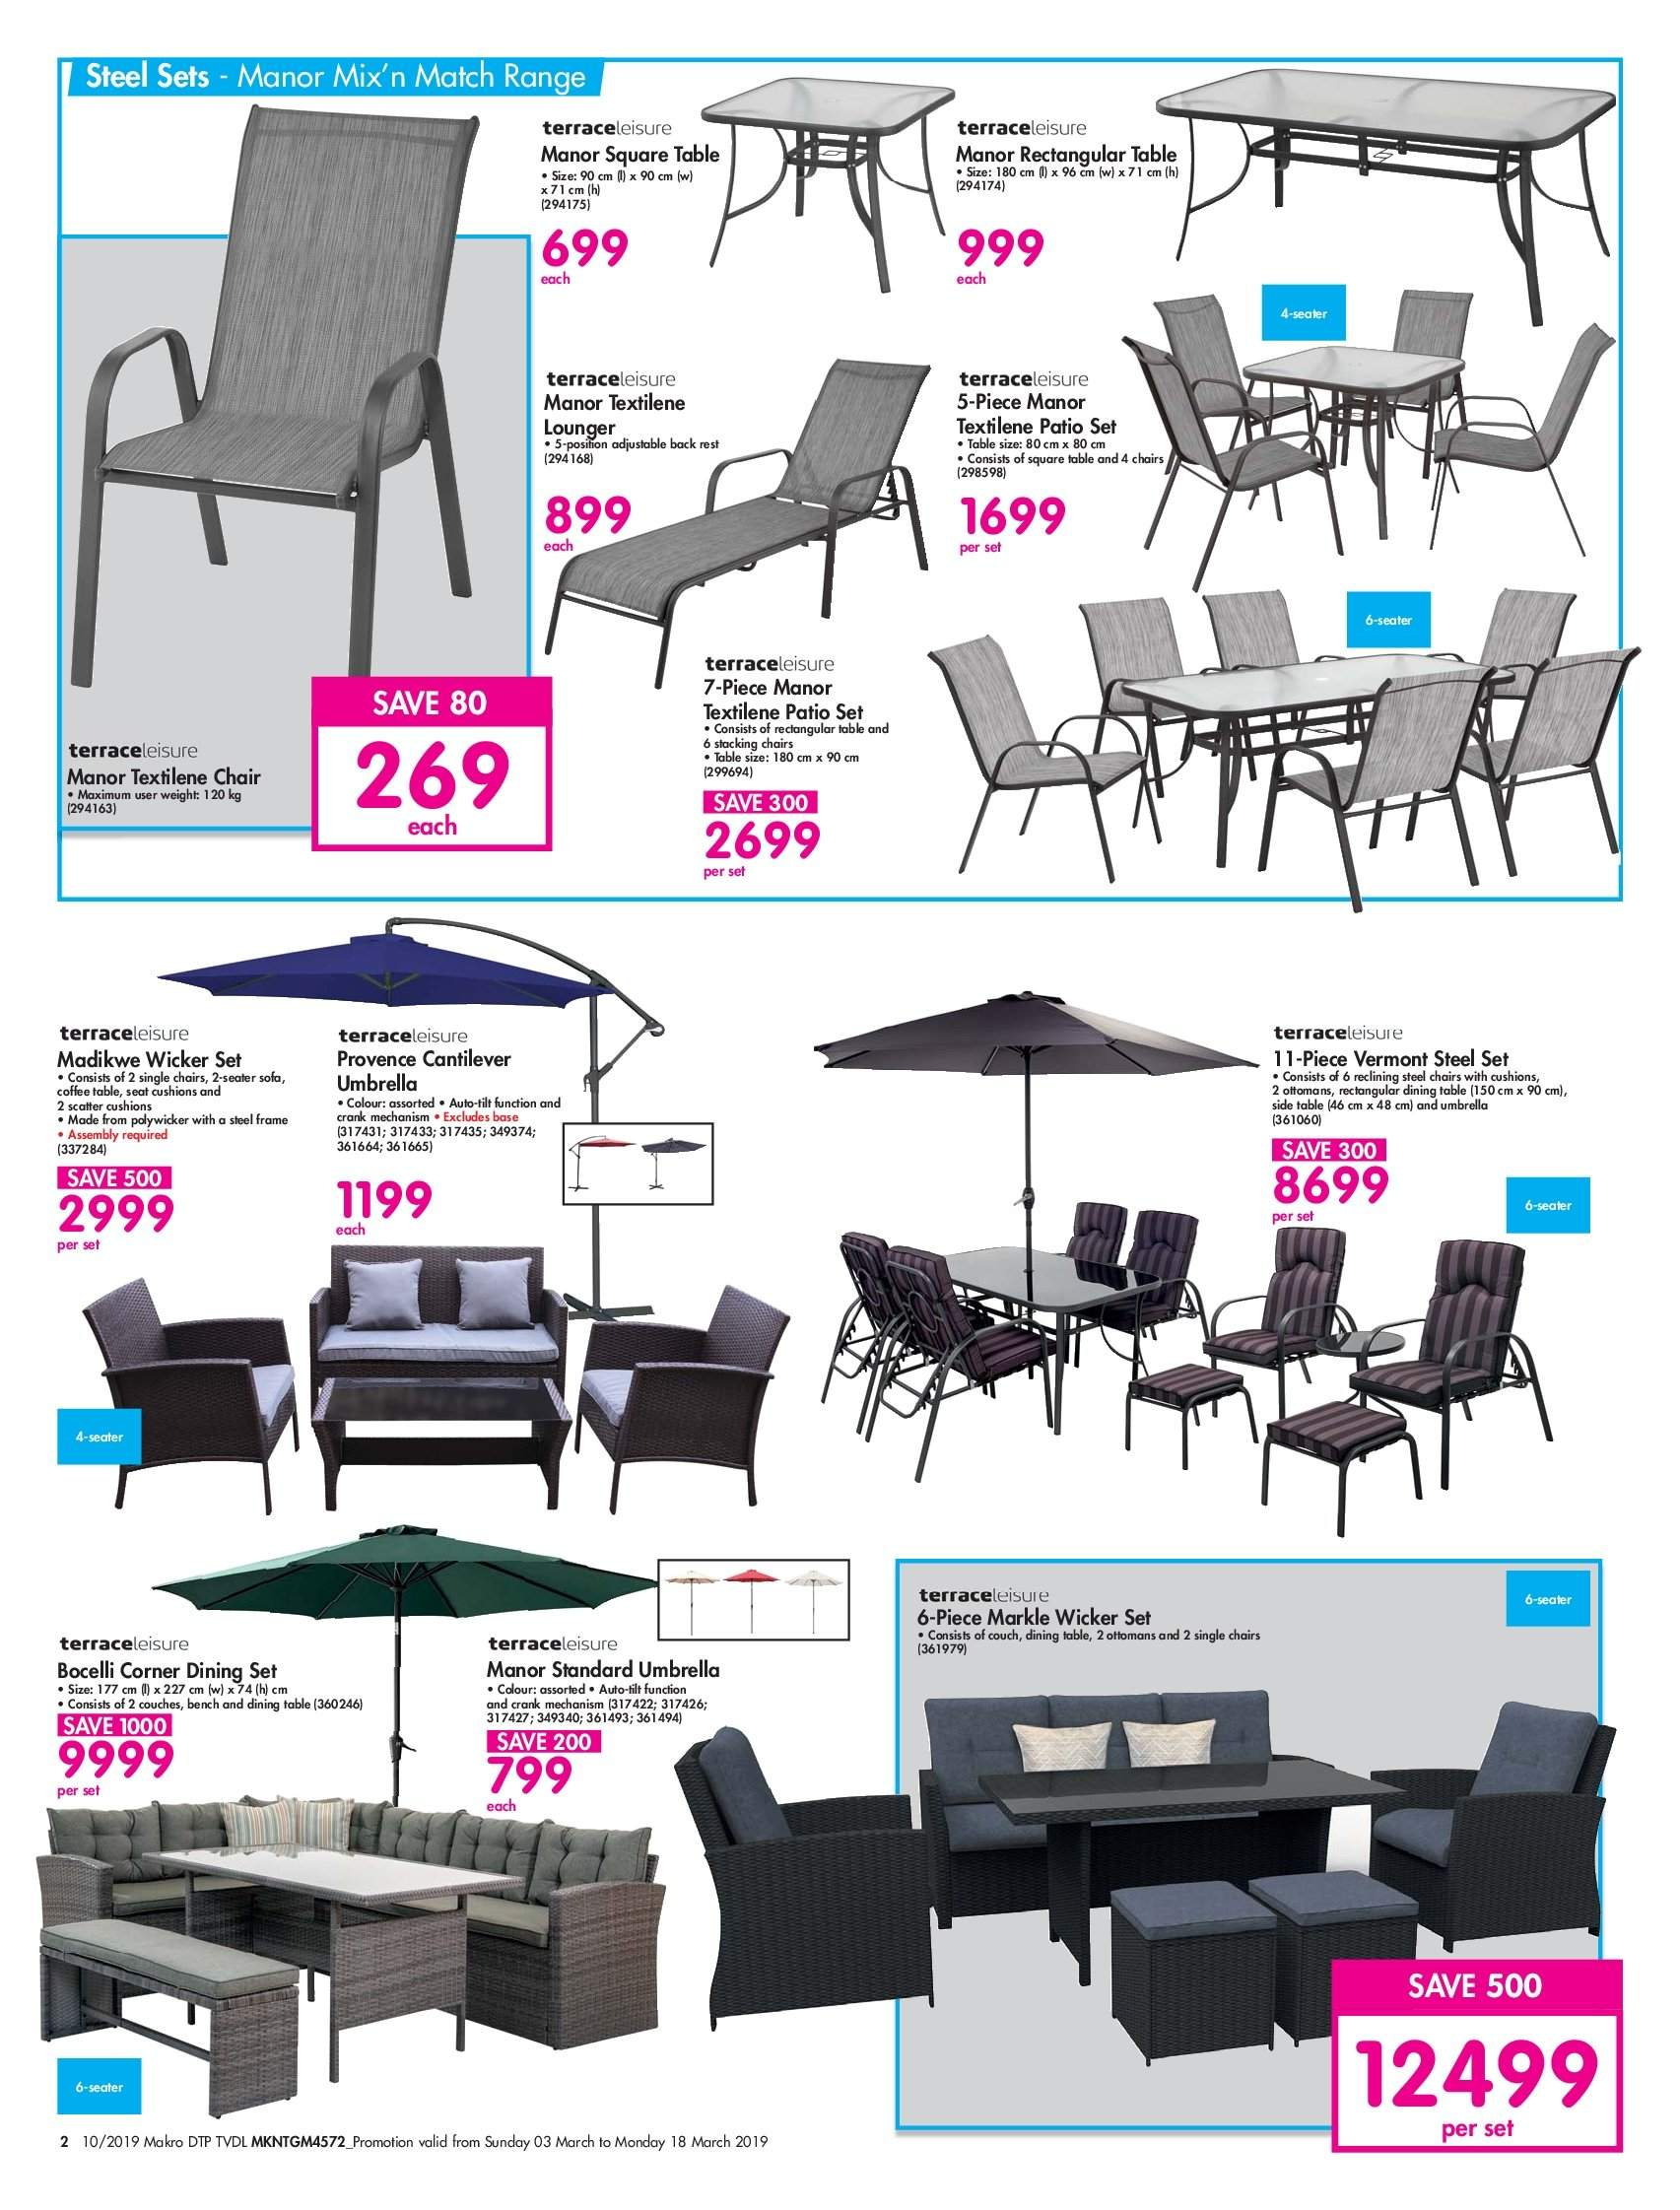 Makro catalogue 10.10.10 - 10.10.10 - page 10  My Catalogue